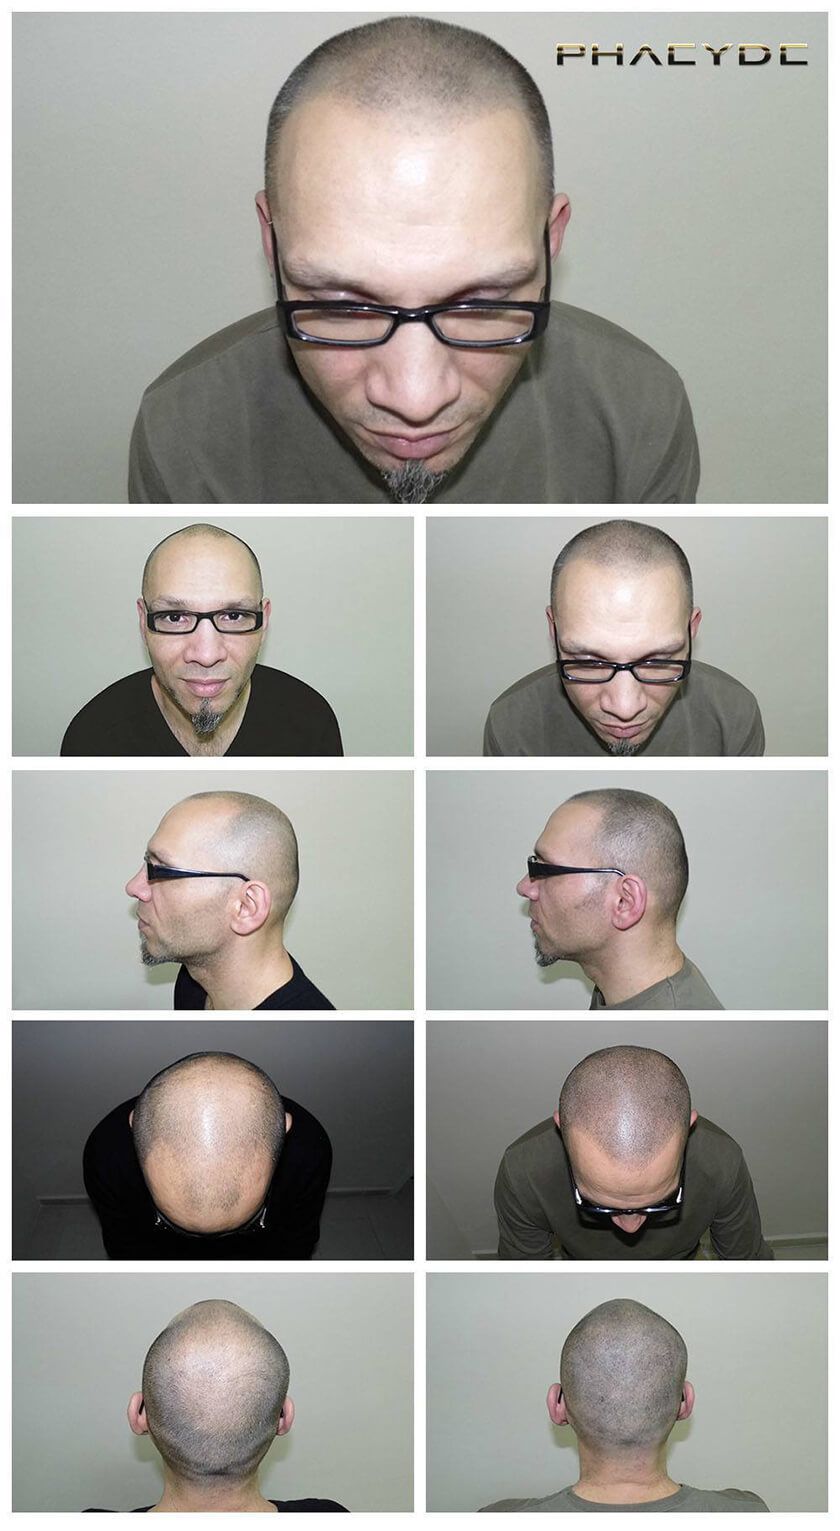 Before After Hair Pigmentation Photos at PHAEYDE Clinic